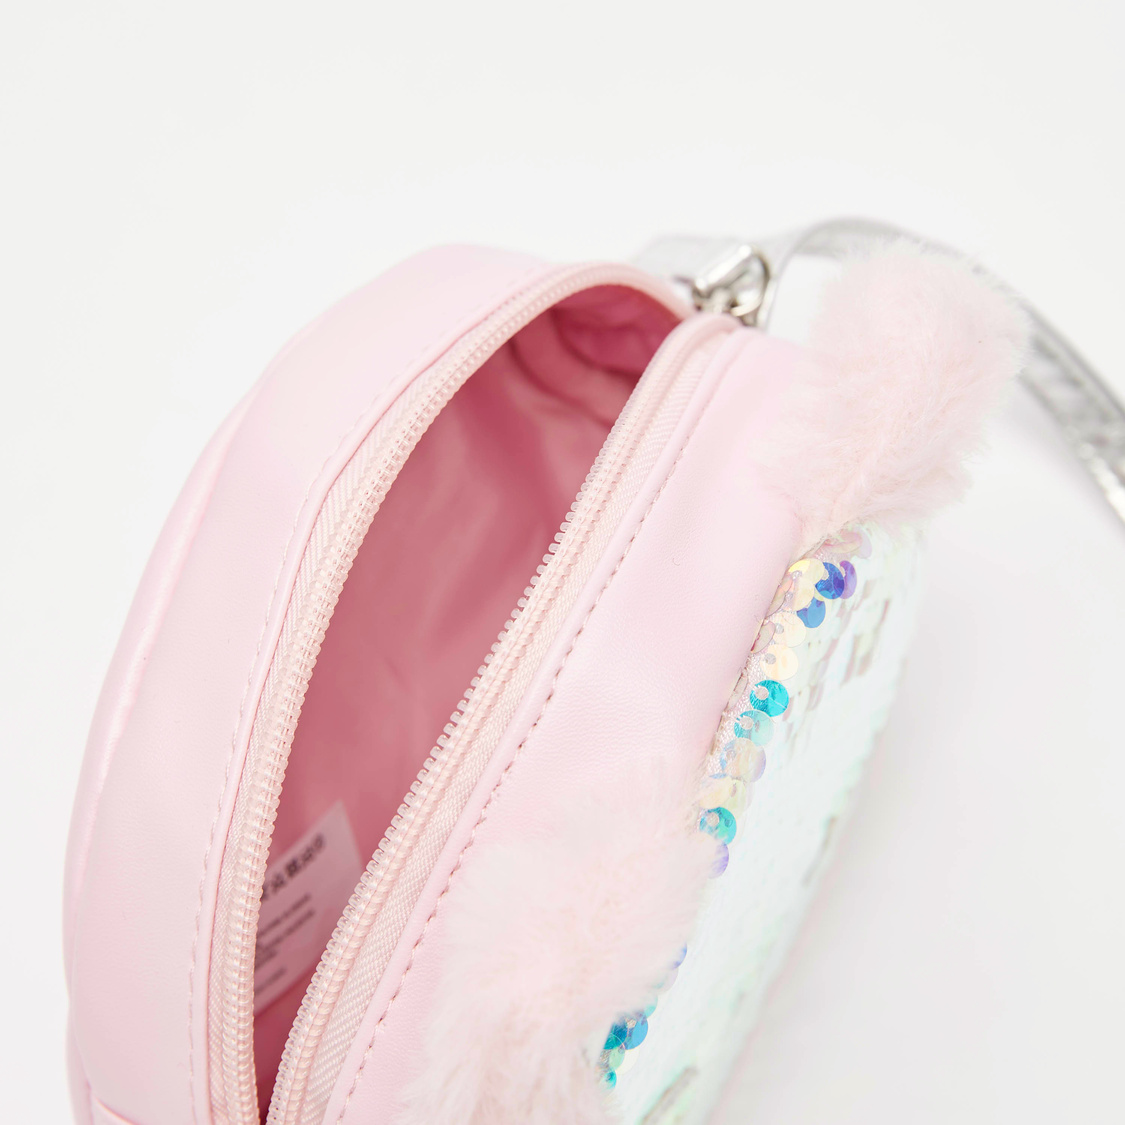 Sequin Detail Crossbody Bag with Adjustable Strap and Zip Closure